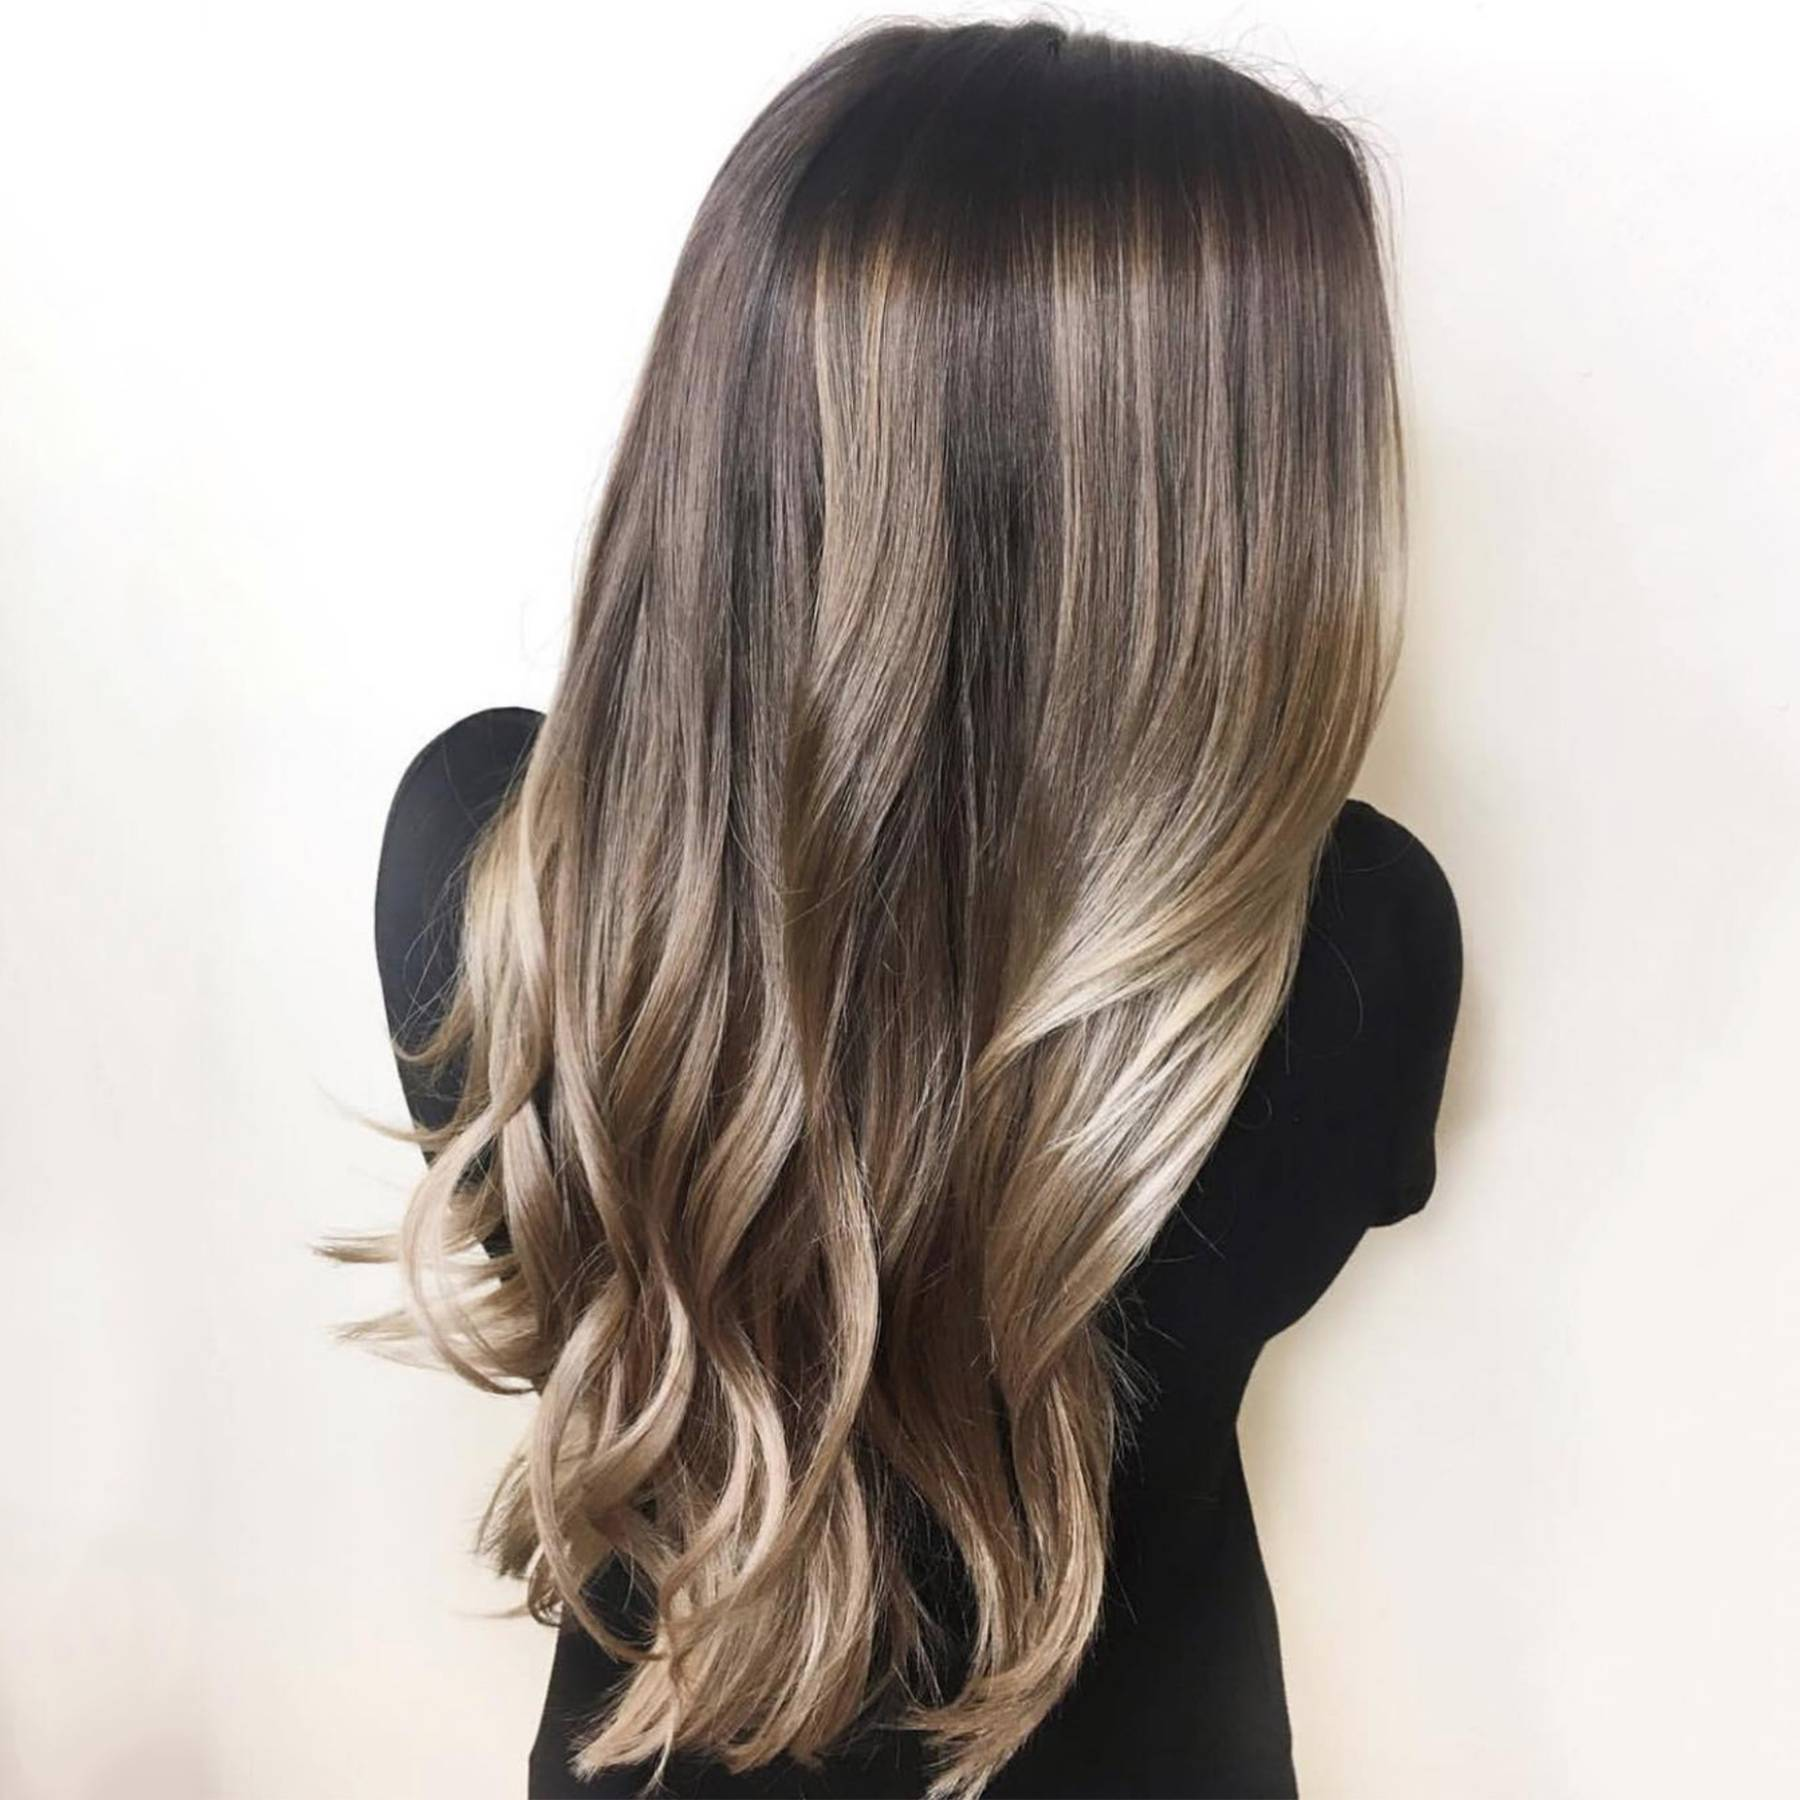 Hair Colours 2019 The Best Colour Ideas For A Change,Up